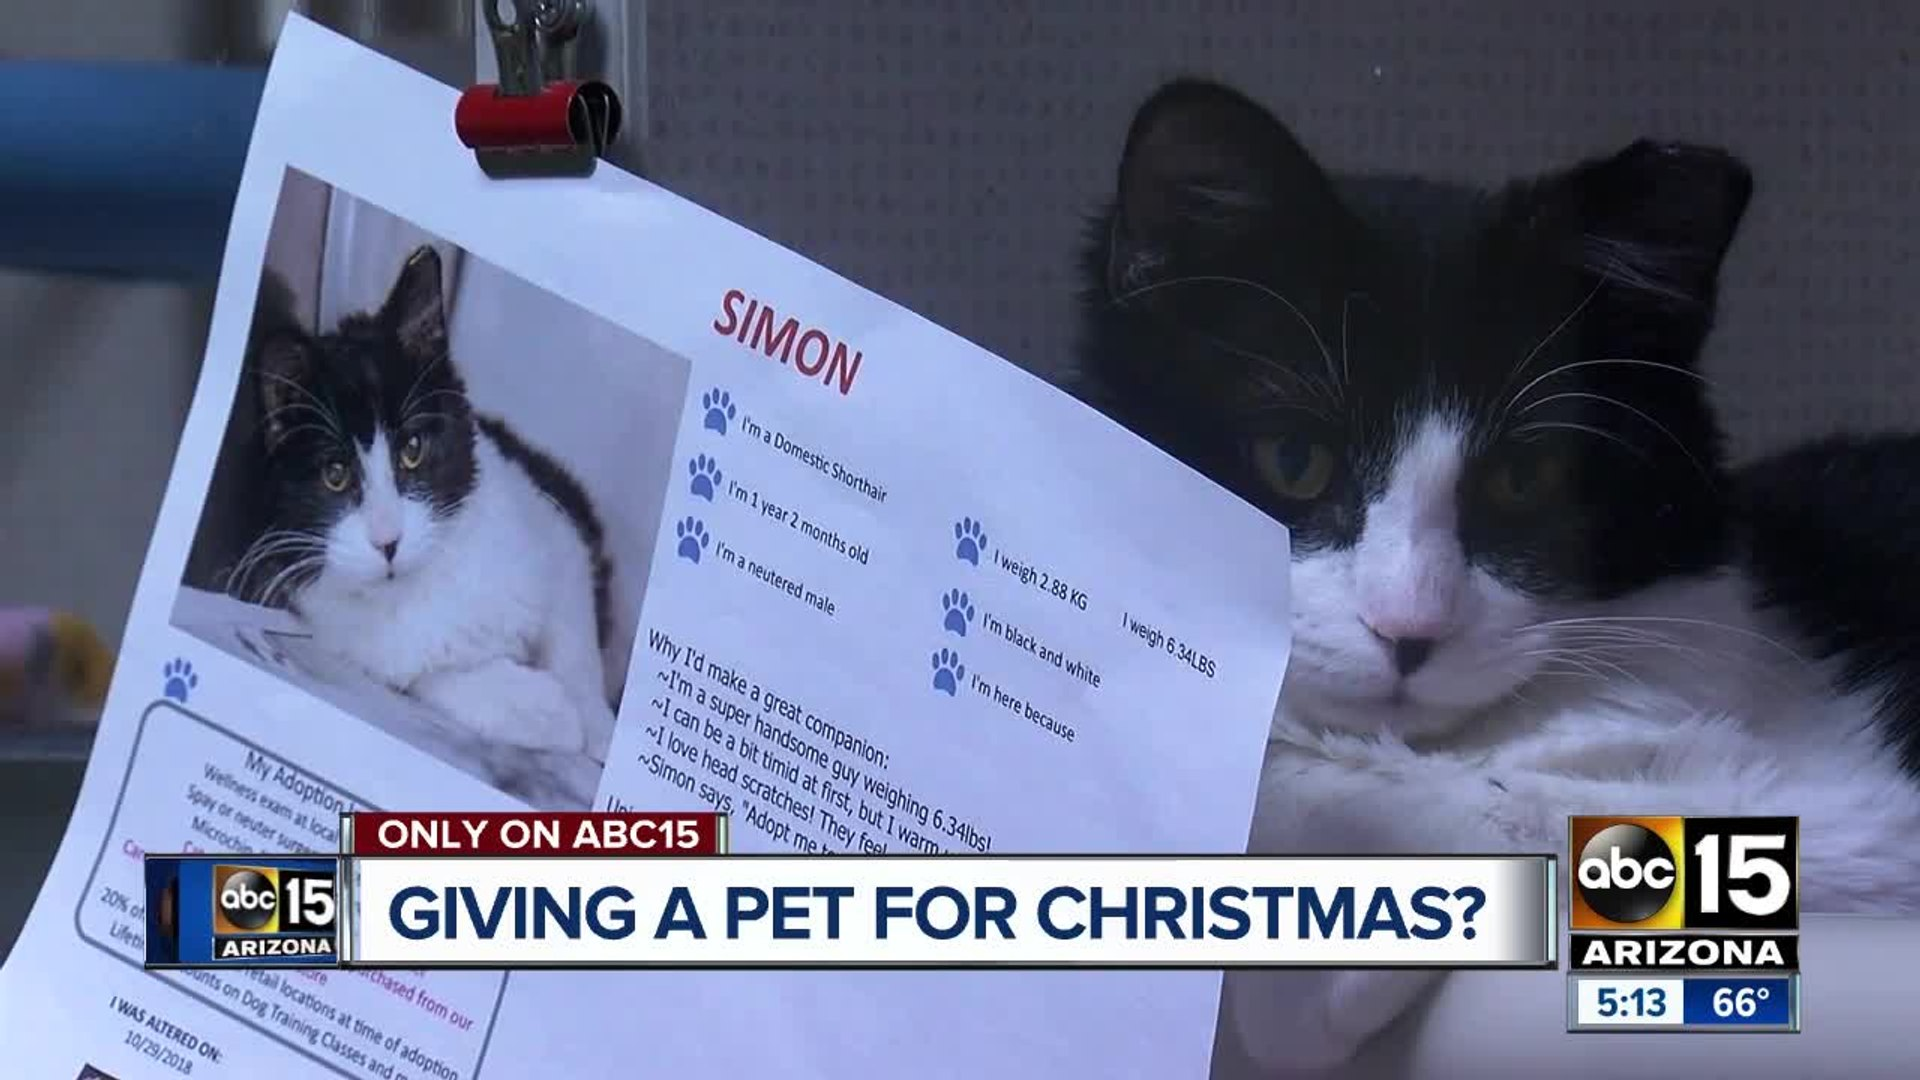 Is a pet on your Christmas list? Questions to ask before giving a pet for Christmas